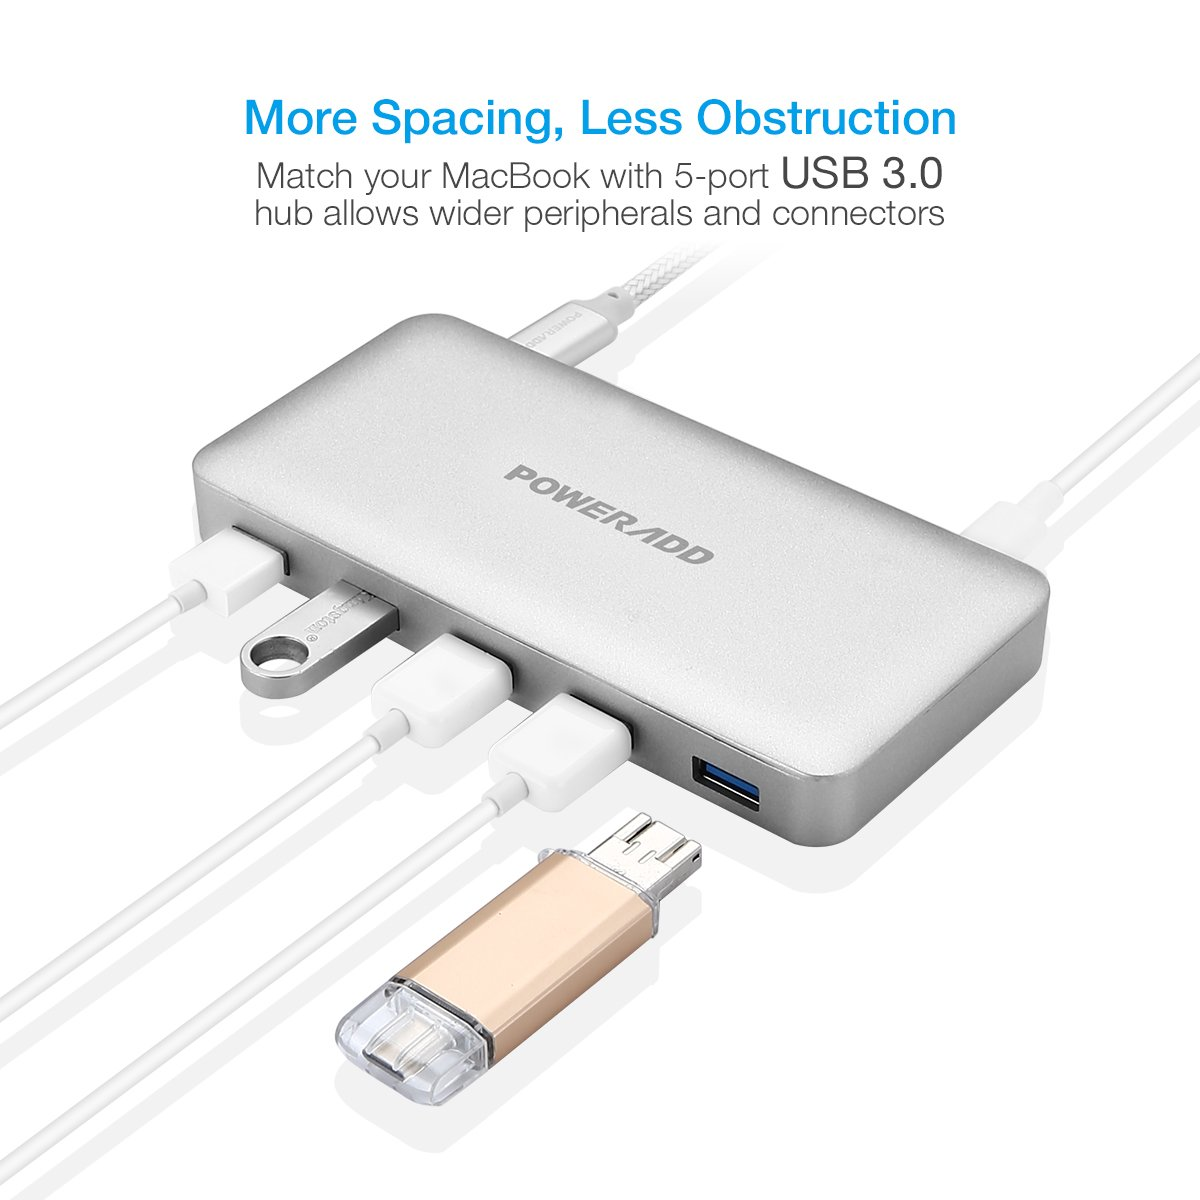 USB C Hub, Poweradd Ultra Slim Type C Hub 5-Port USB 3.0 and PD 2.0 Data Hub (5Gbps Transfer Speed, Anodized Alloy, Compact and Lightweight) for Mac, PC, USB Flash Drives and Other Devices - Silver